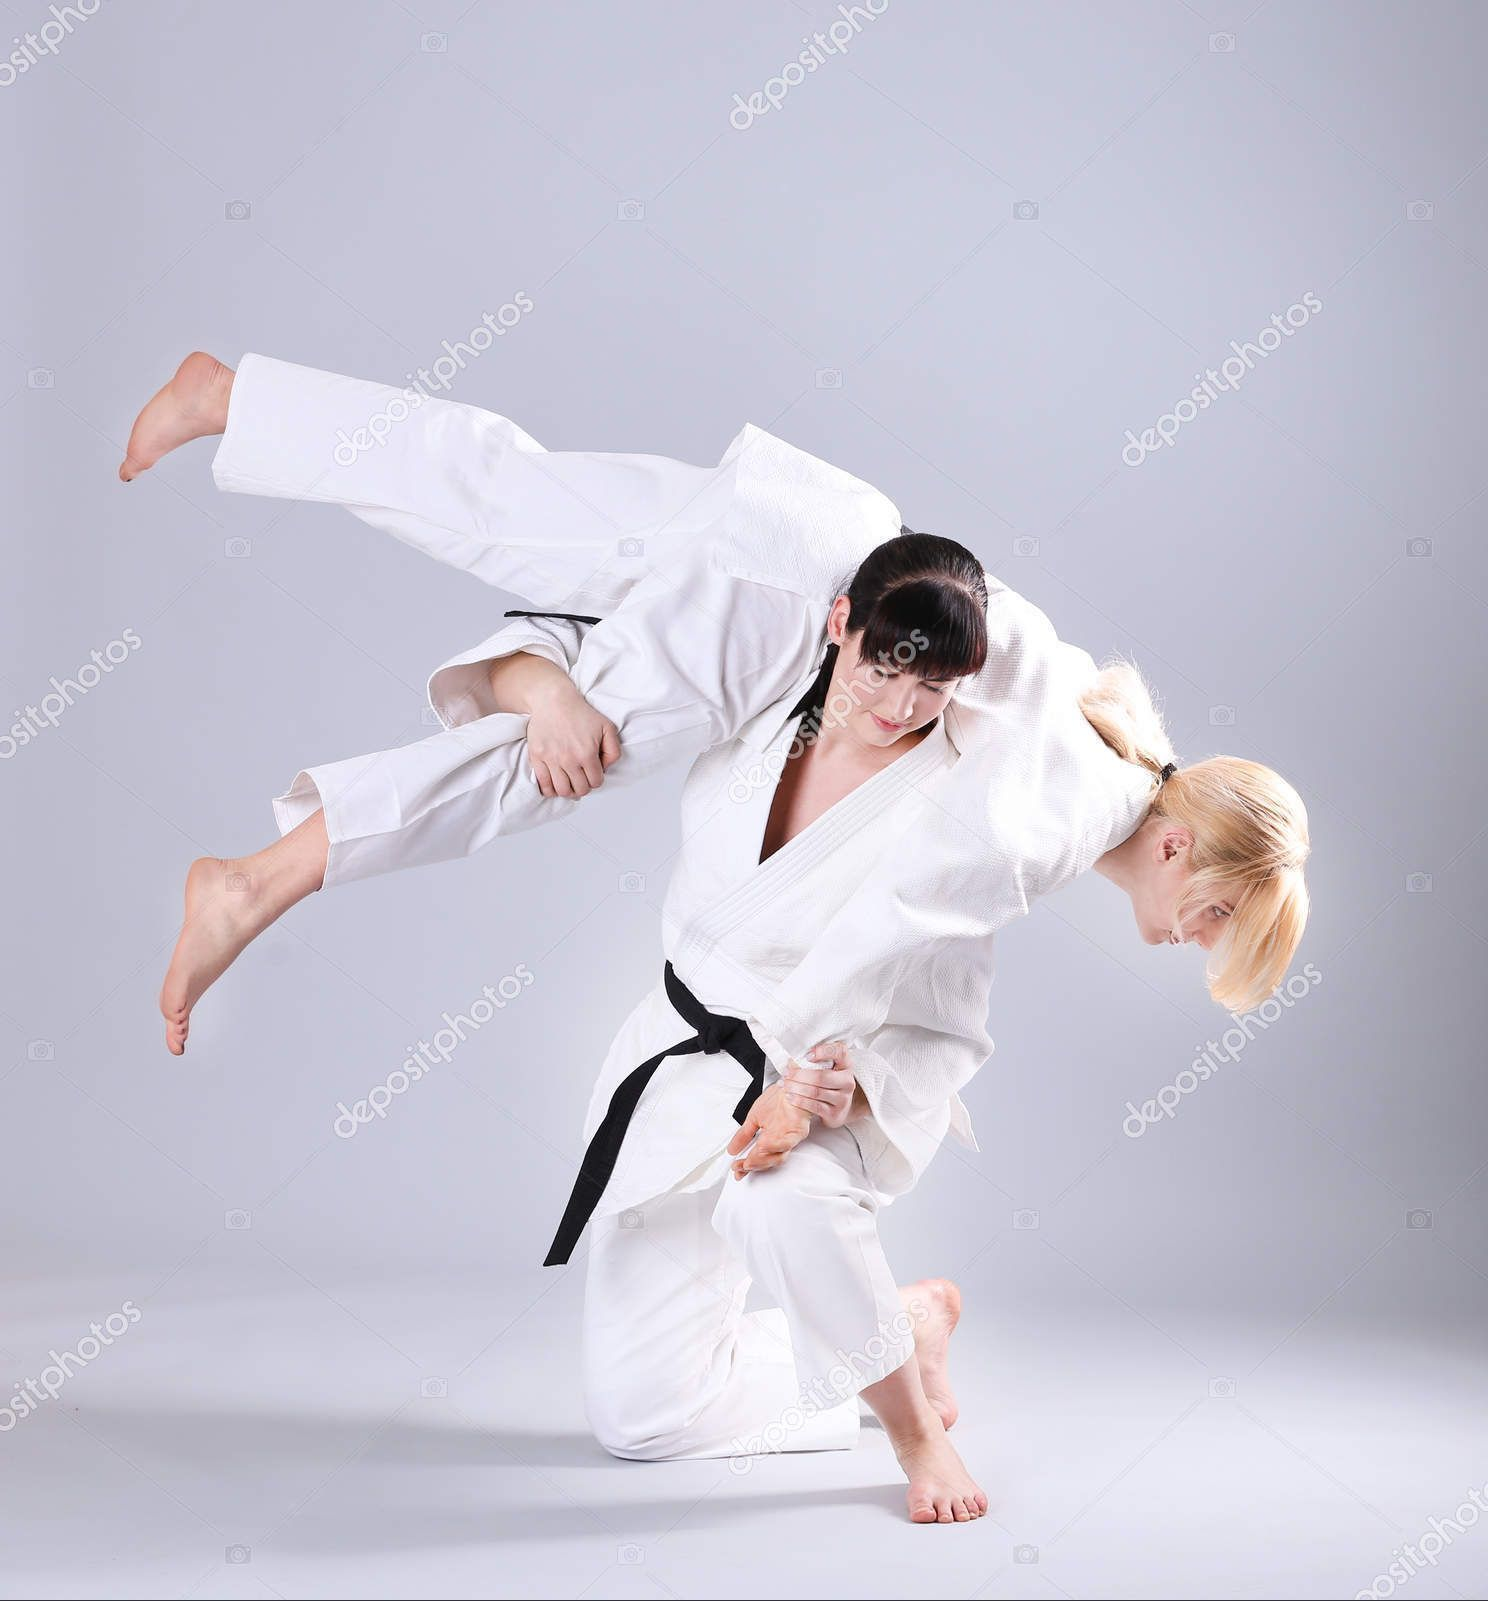 Image by Ryan Pavichevich on Martial arts in 2020